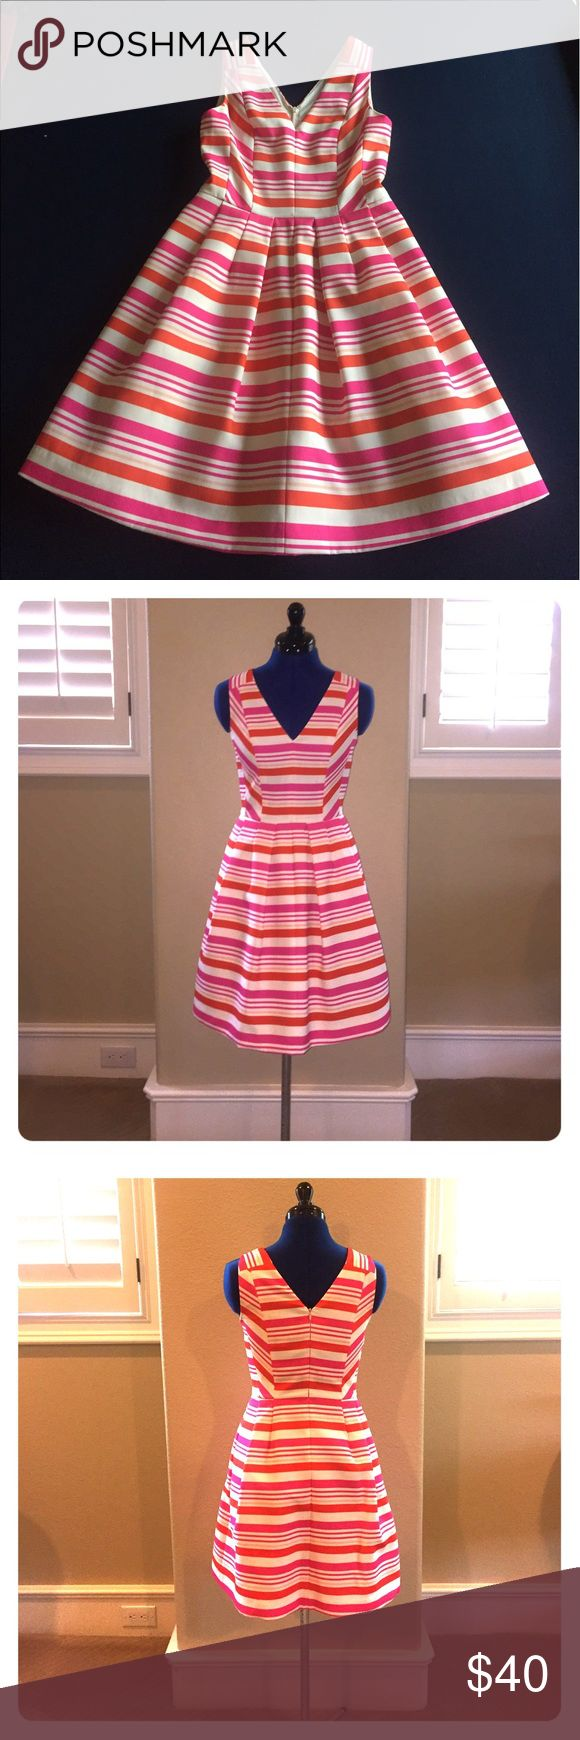 McGinn striped party dress. Size 2 Pink, orange, cream striped party dress.  Perfect for wedding or special occasion.  Excellent condition. Worn only a few times. Size 2. McGinn Dresses Midi